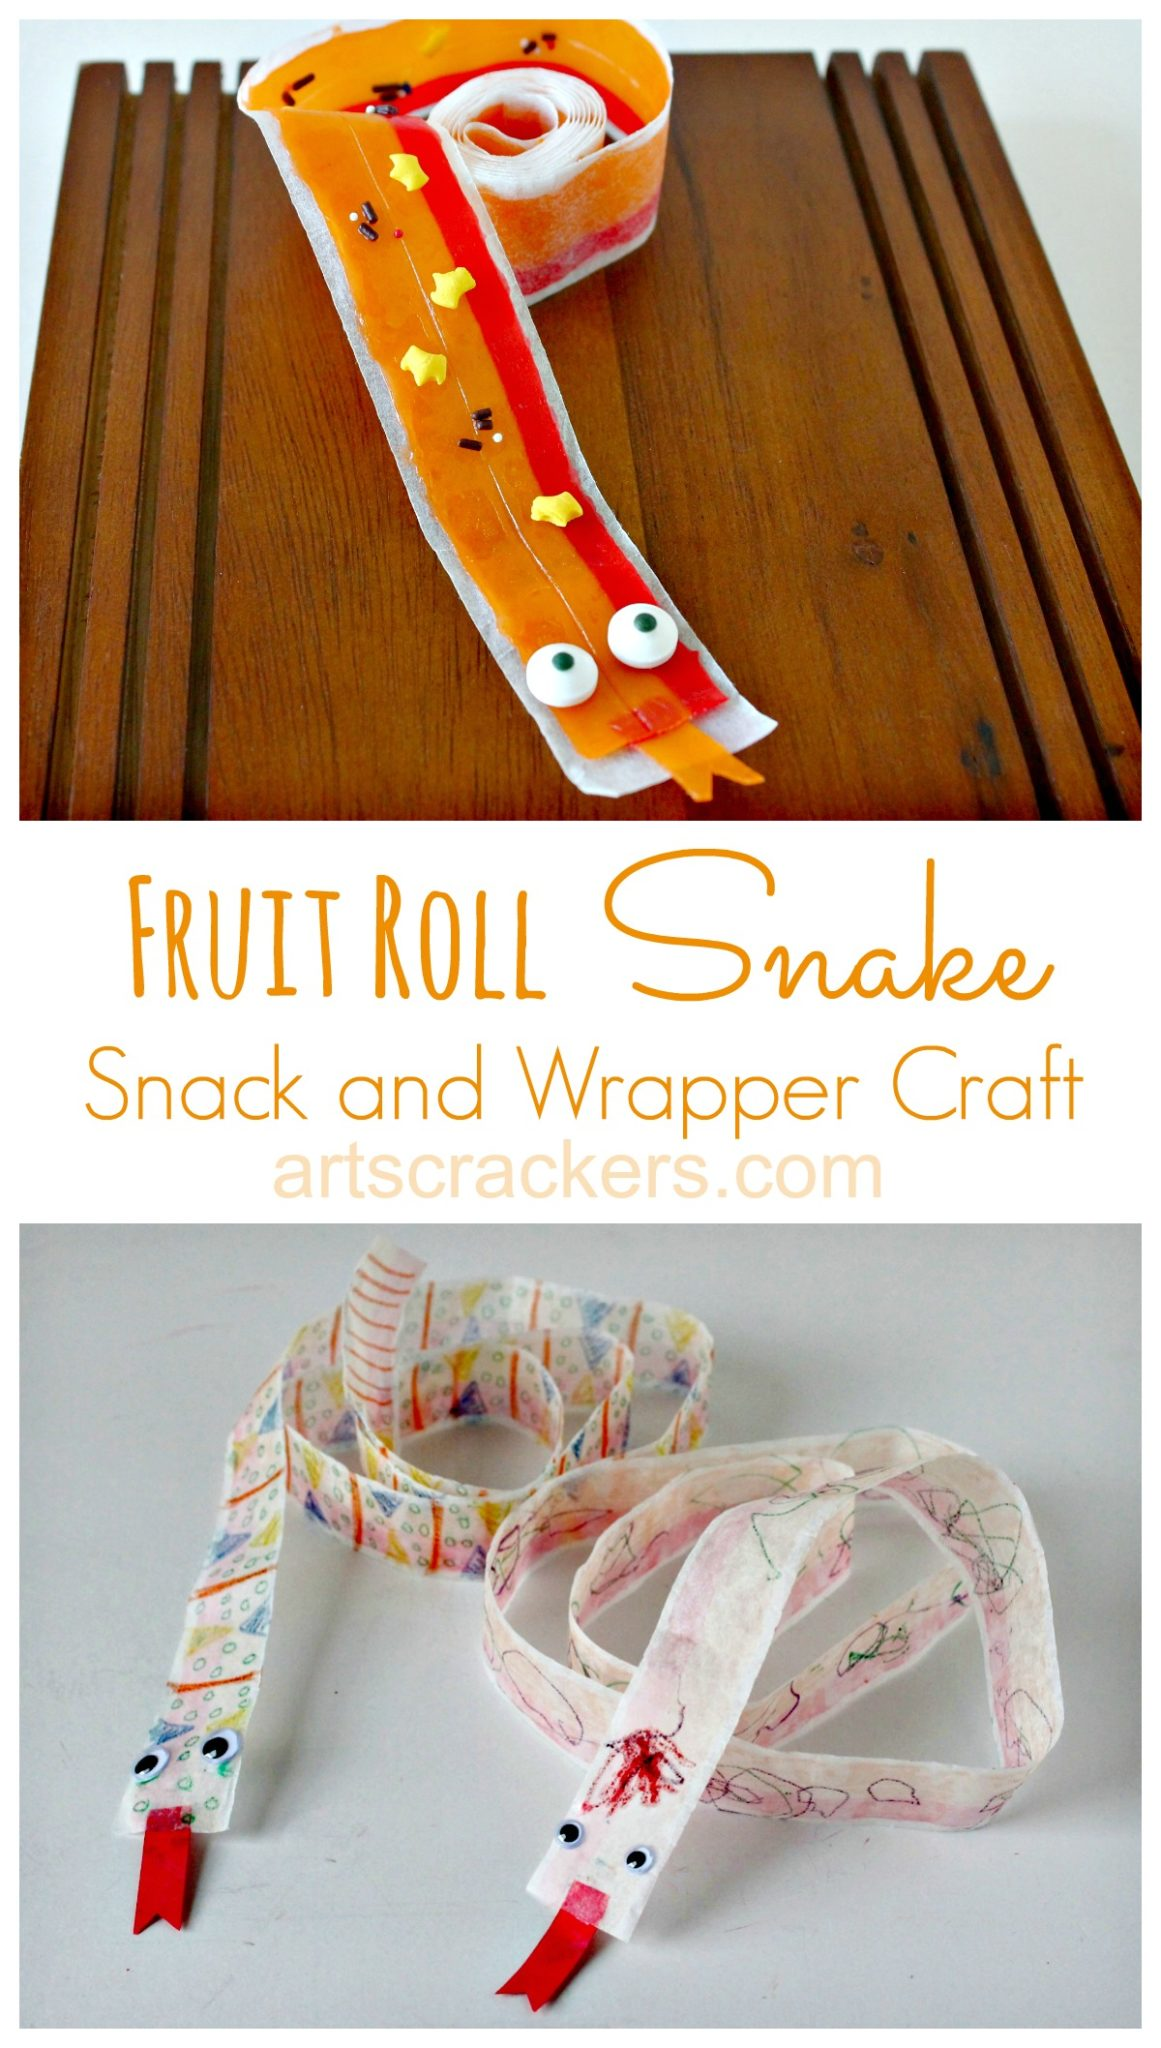 Fruit Roll Snake Snack and Wrapper Craft. Click the picture to get the tutorial.